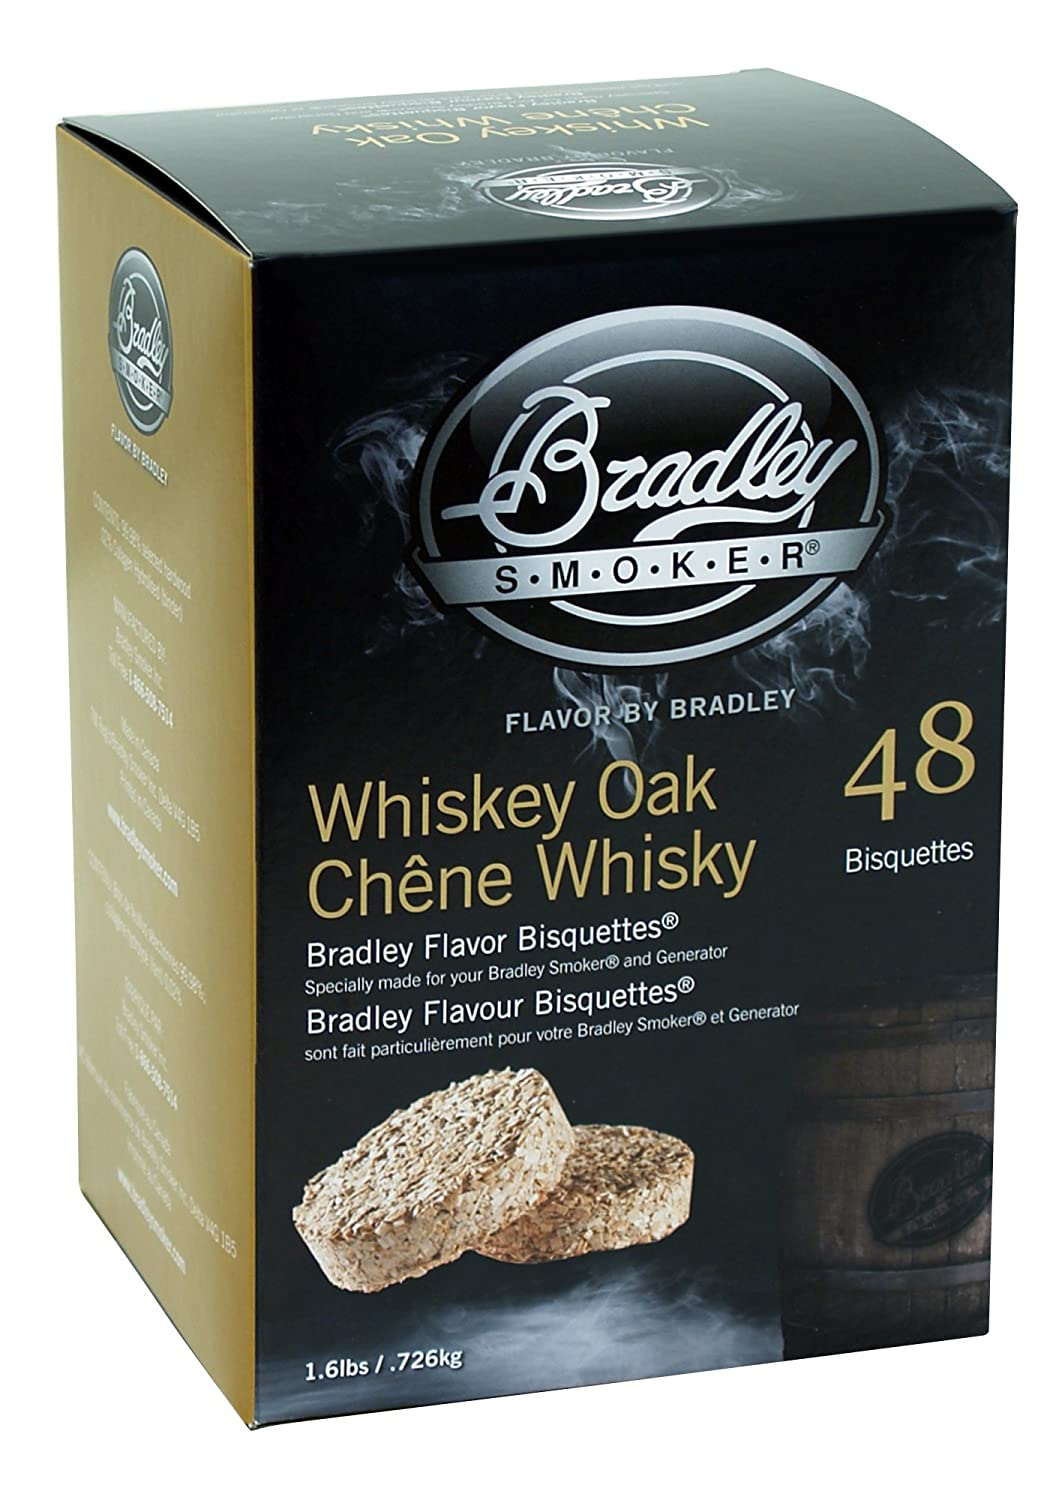 Bradley smoker BTWOSE48 - Roble whisky bisquettes 48 pack